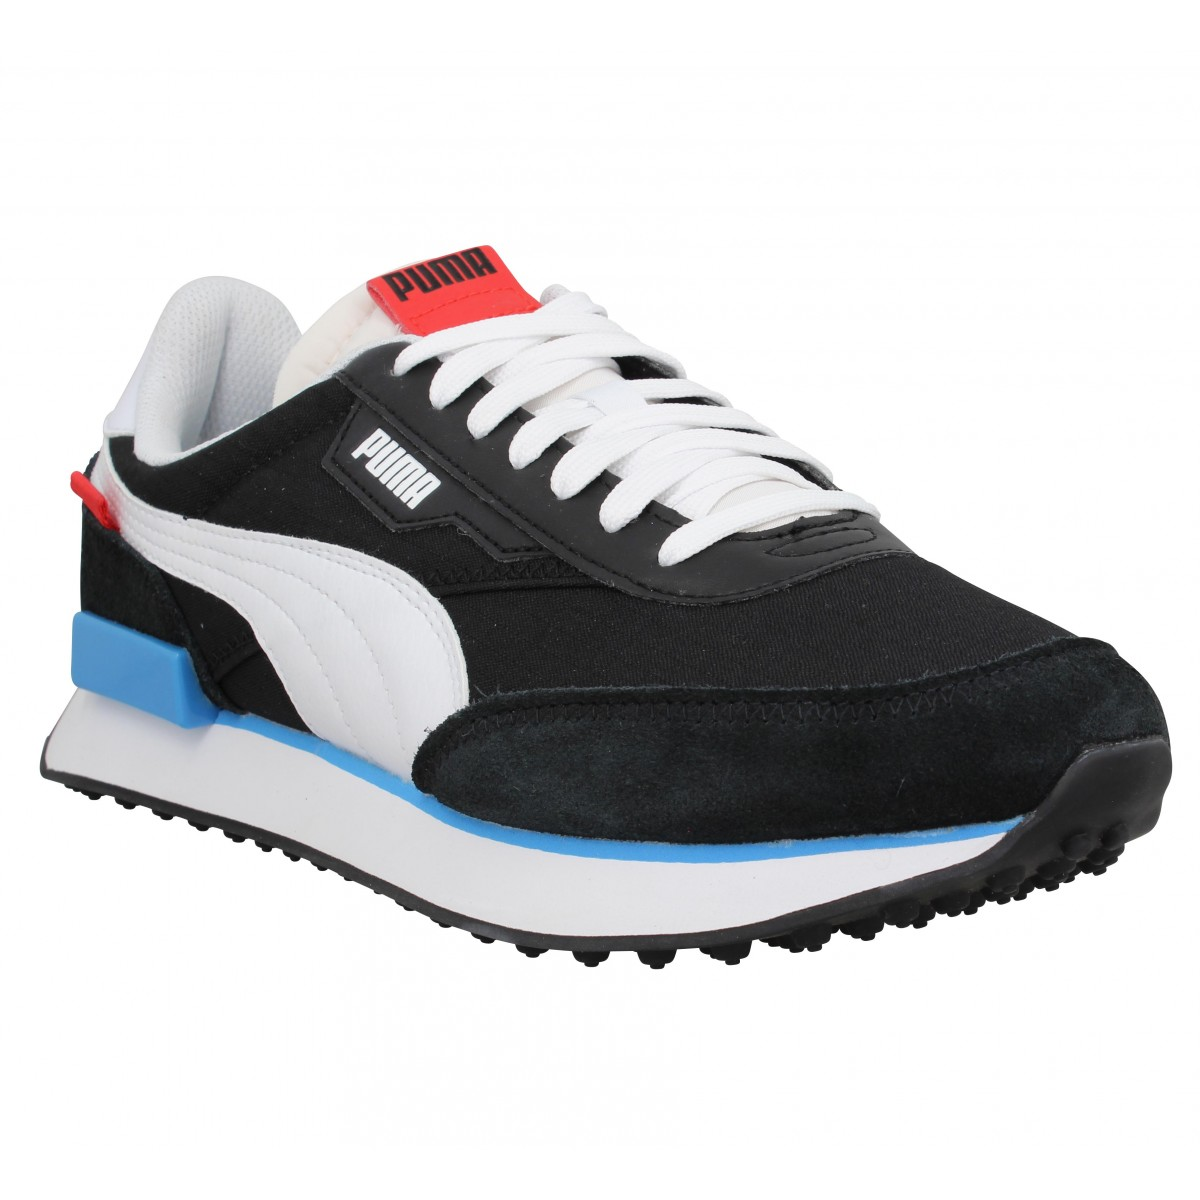 Baskets PUMA Future Rider Play On velours toile Homme Noir Blanc